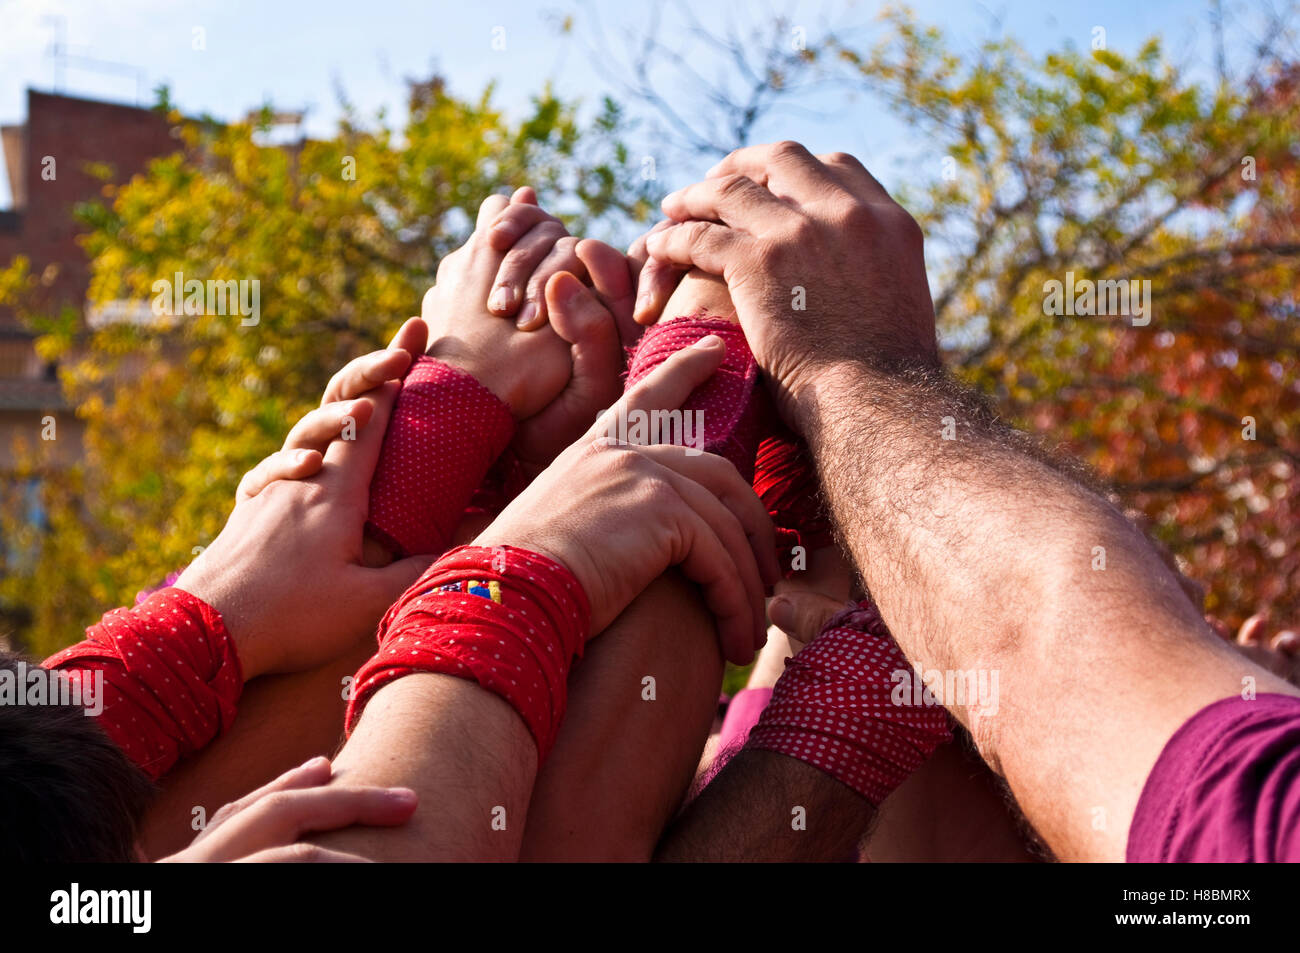 Castellers, human towers, Tradition - Stock Image